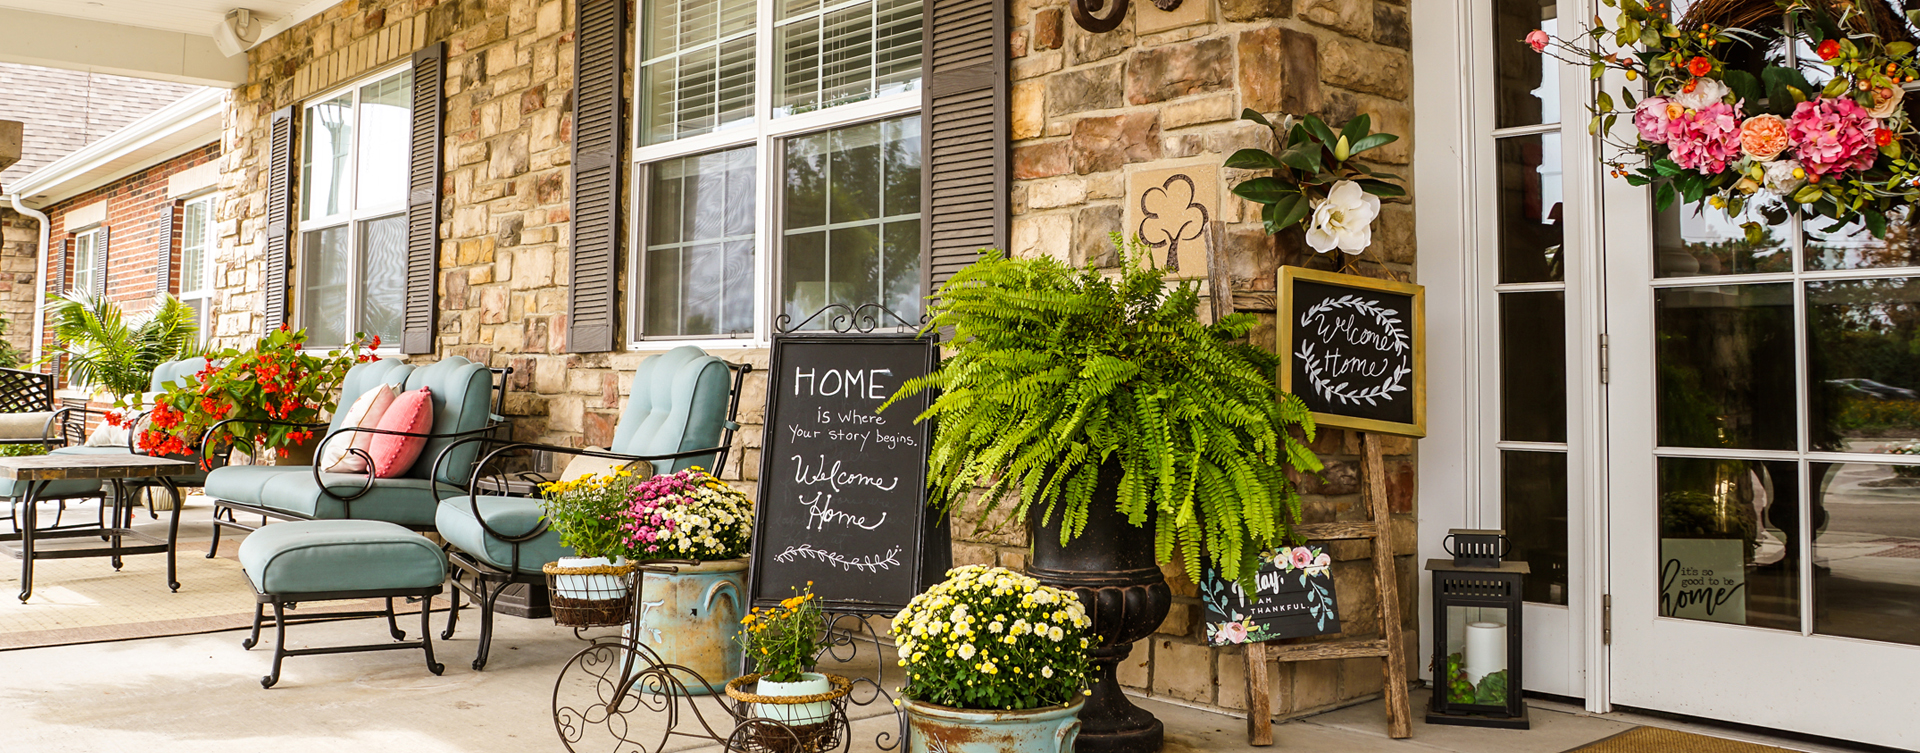 Enjoy conversations with friends on the porch at Bickford of Gurnee